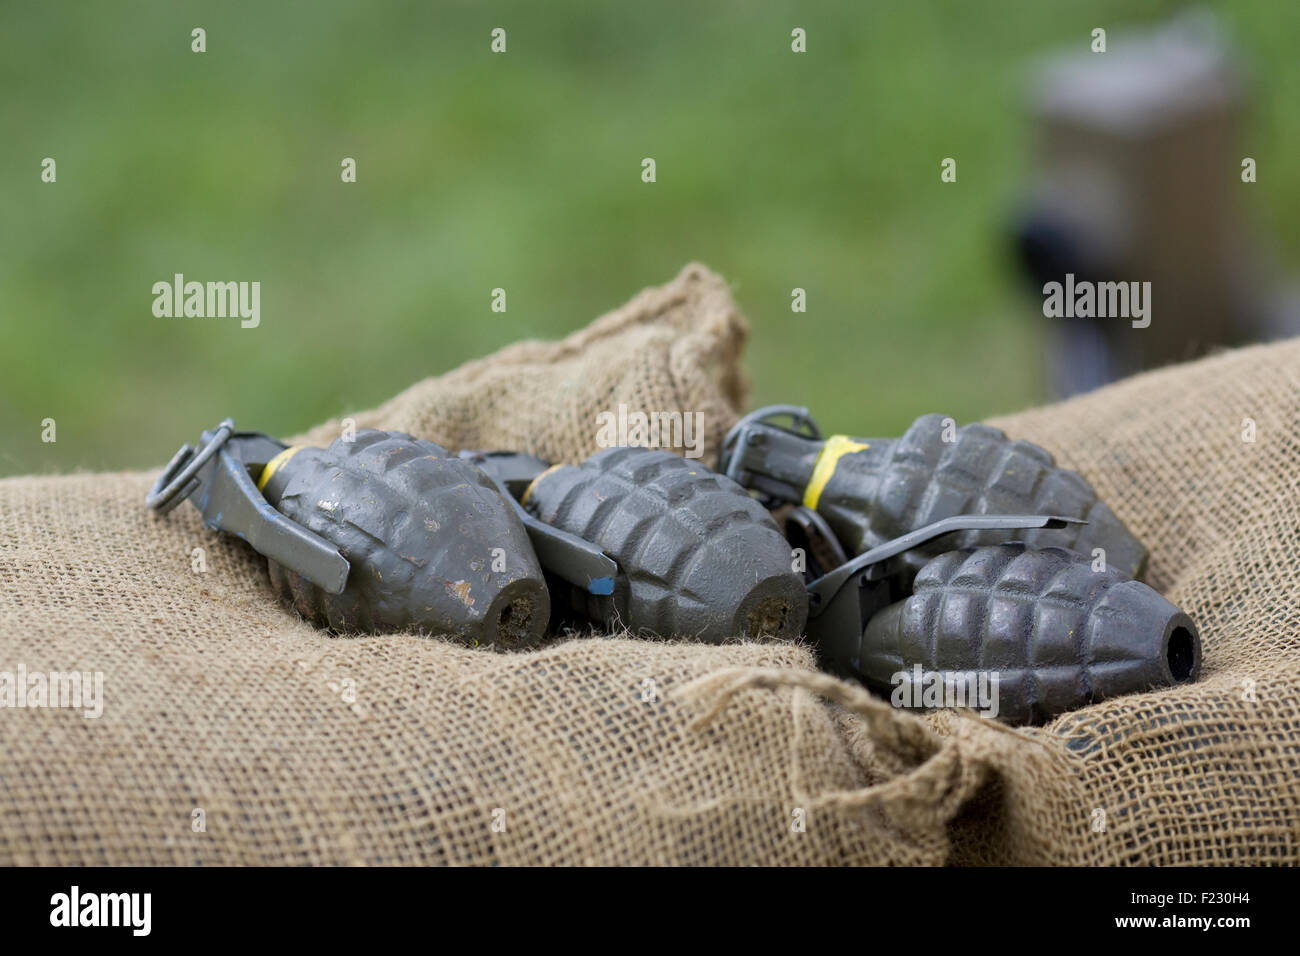 World War 2 American Hand Grenades on a burlap sack - Stock Image